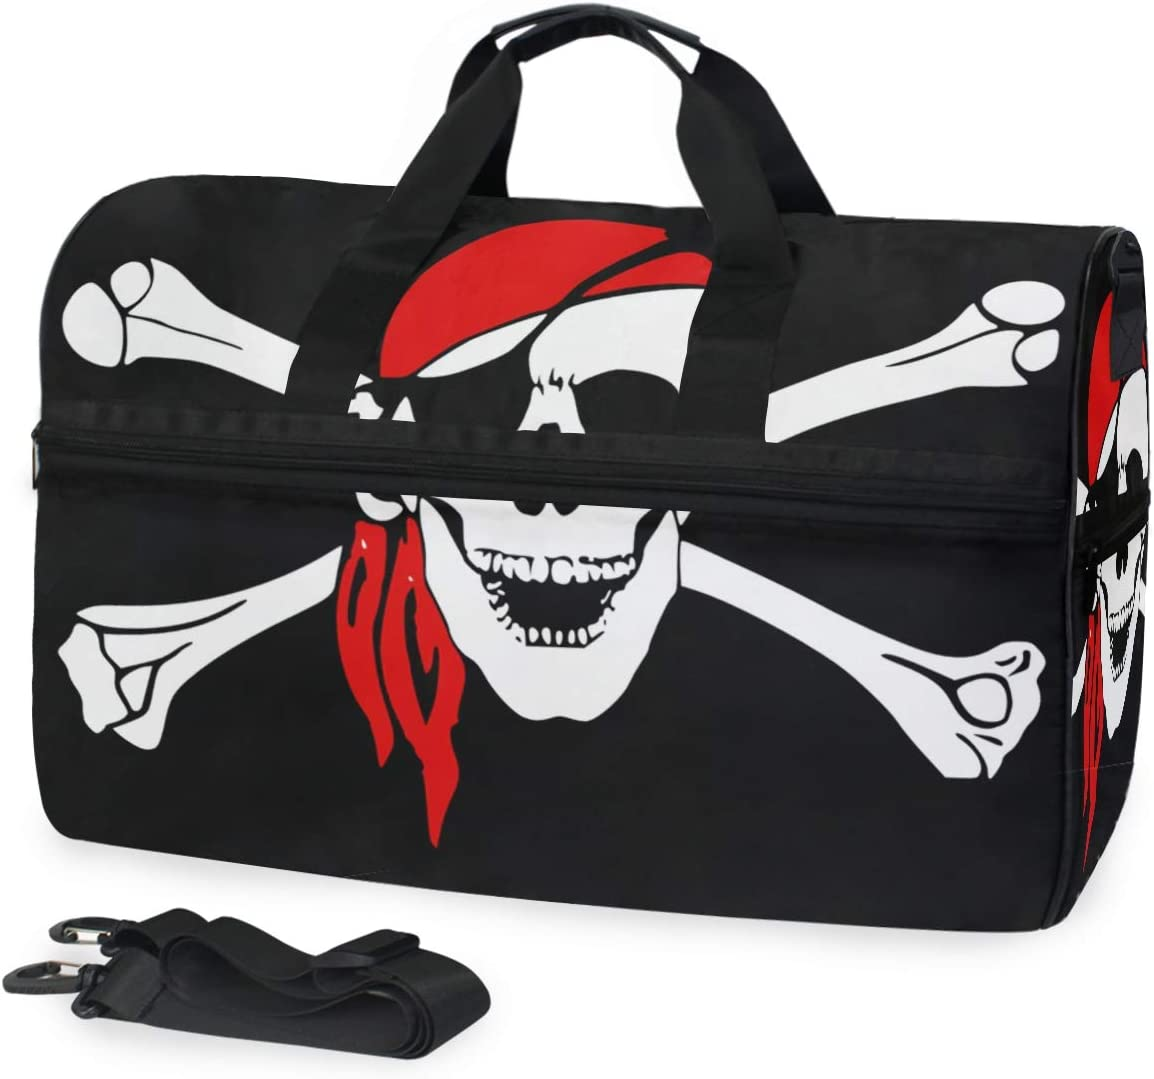 MUOOUM Pirate Skull Flag Large Duffle Bags Sports Gym Bag with Shoes Compartment for Men and Women